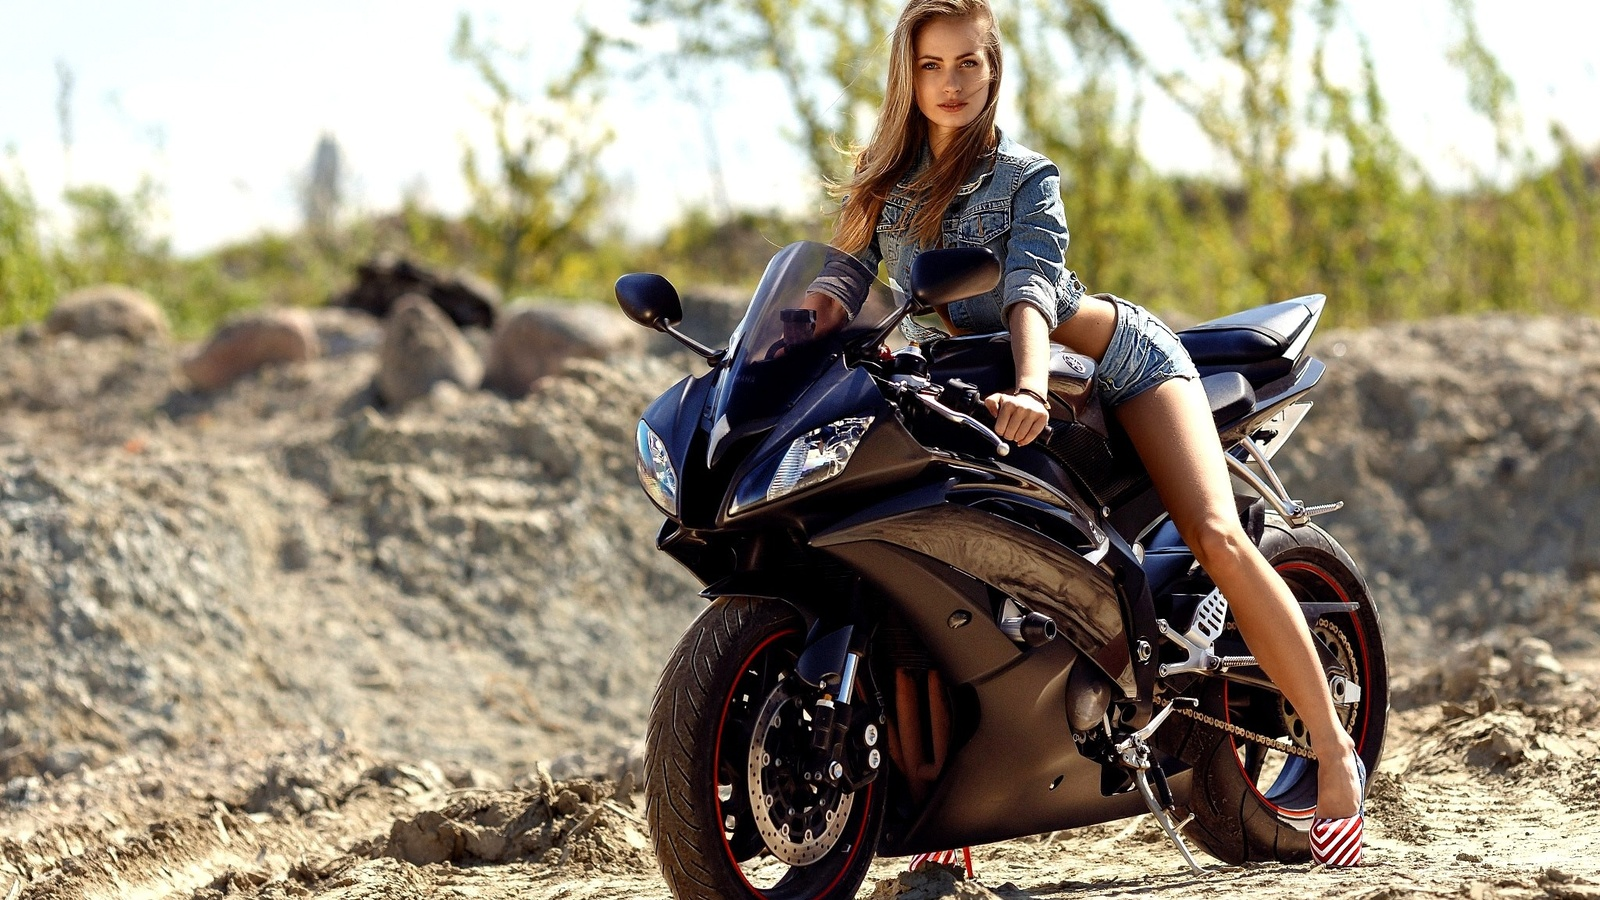 4K Girl On A Motorcycle Wallpapers High Quality